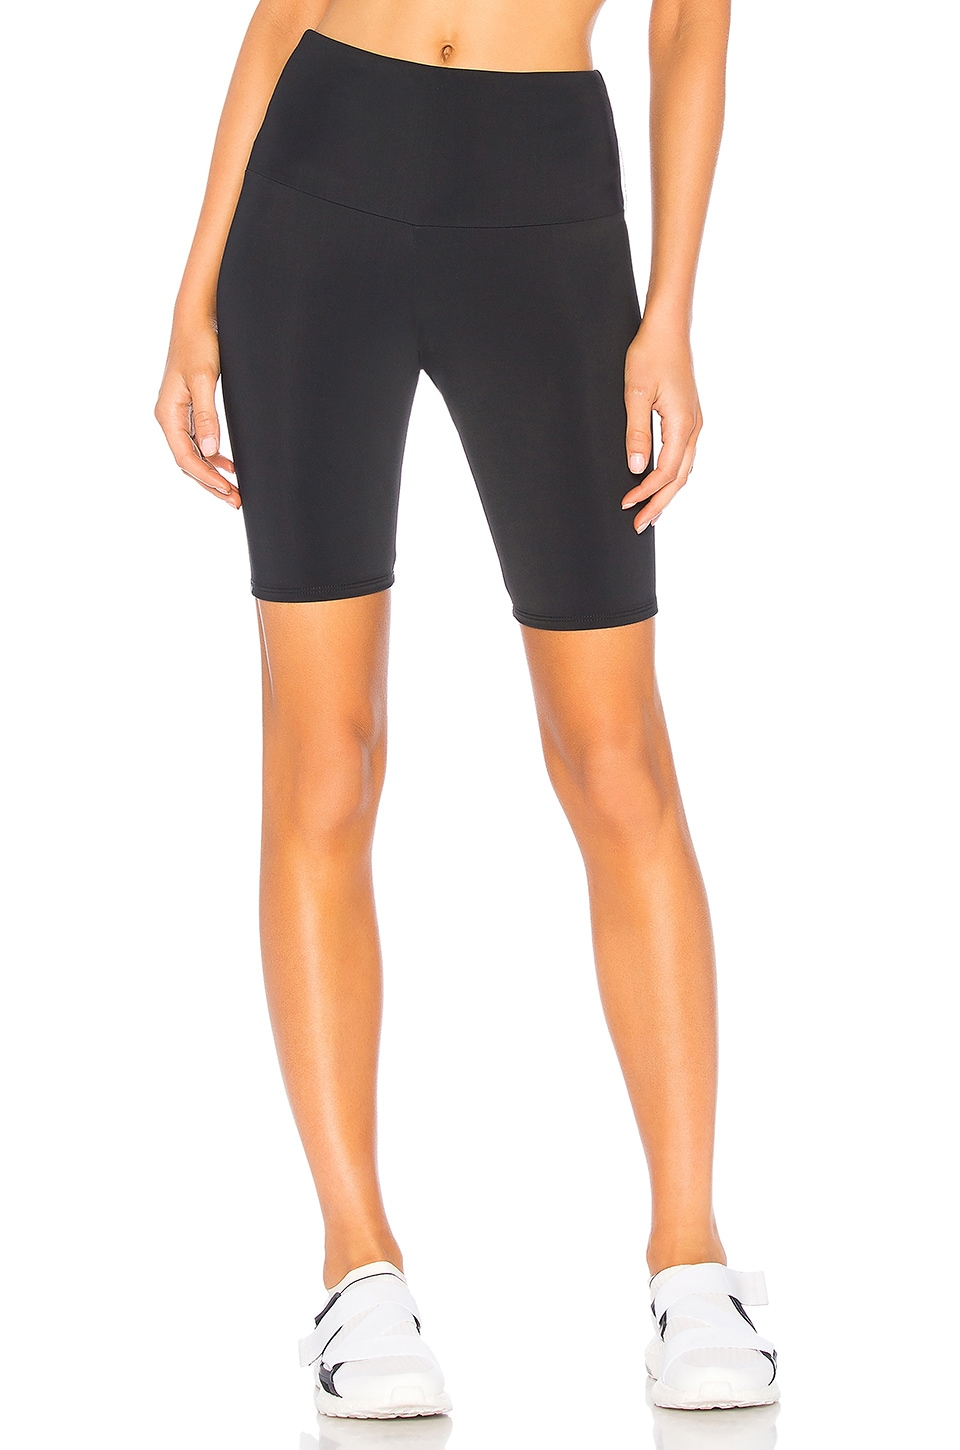 High Rise Bike Short             onzie                                                                                                       CA$ 74.43 4